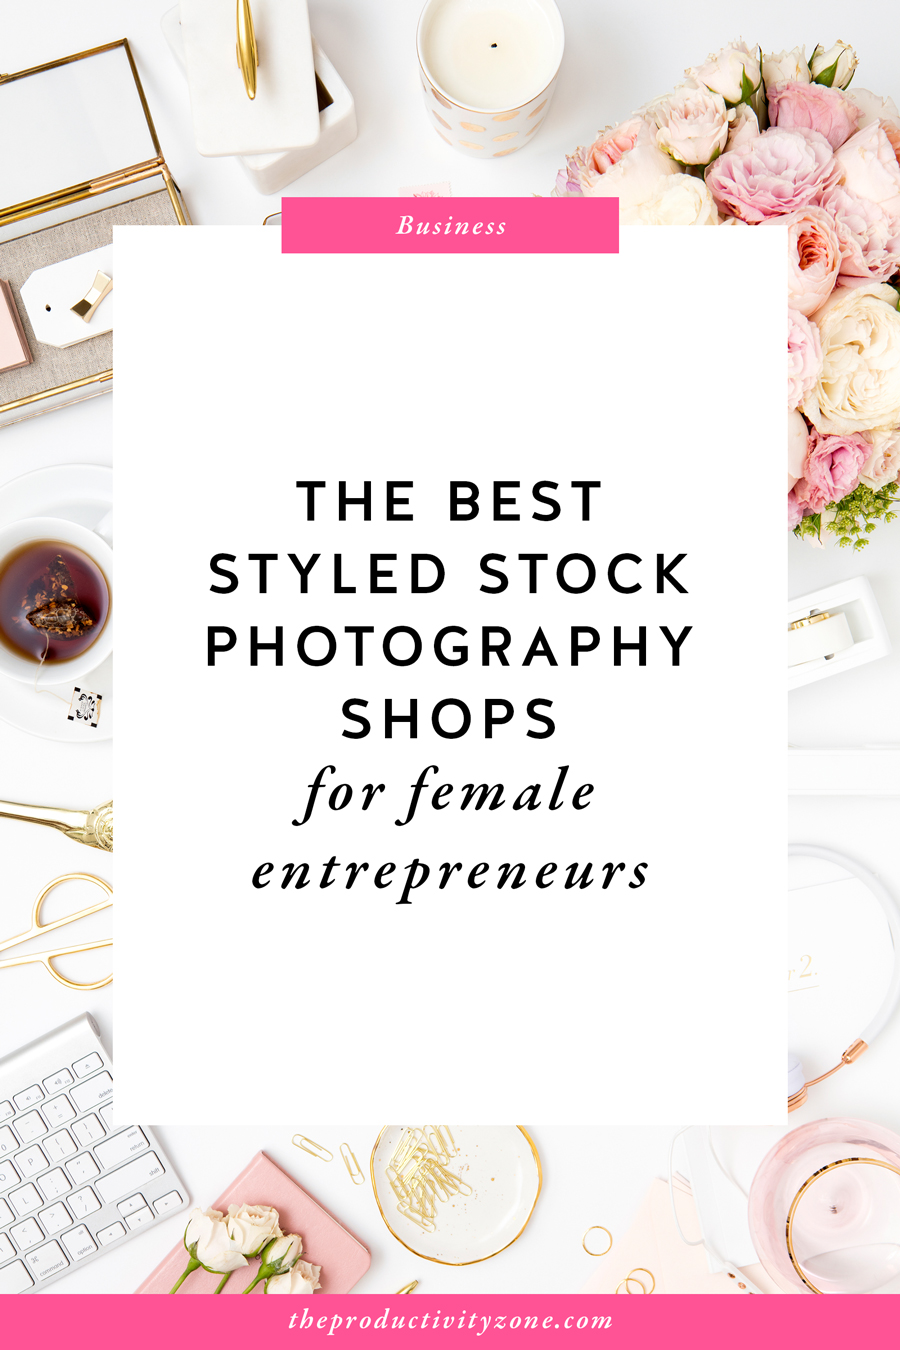 The best styled stock photography shops for female entrepreneurs!! Need I say more?! Find out the only two shops I personally recommend for creative small business owners and bloggers on The Productivity Zone!!